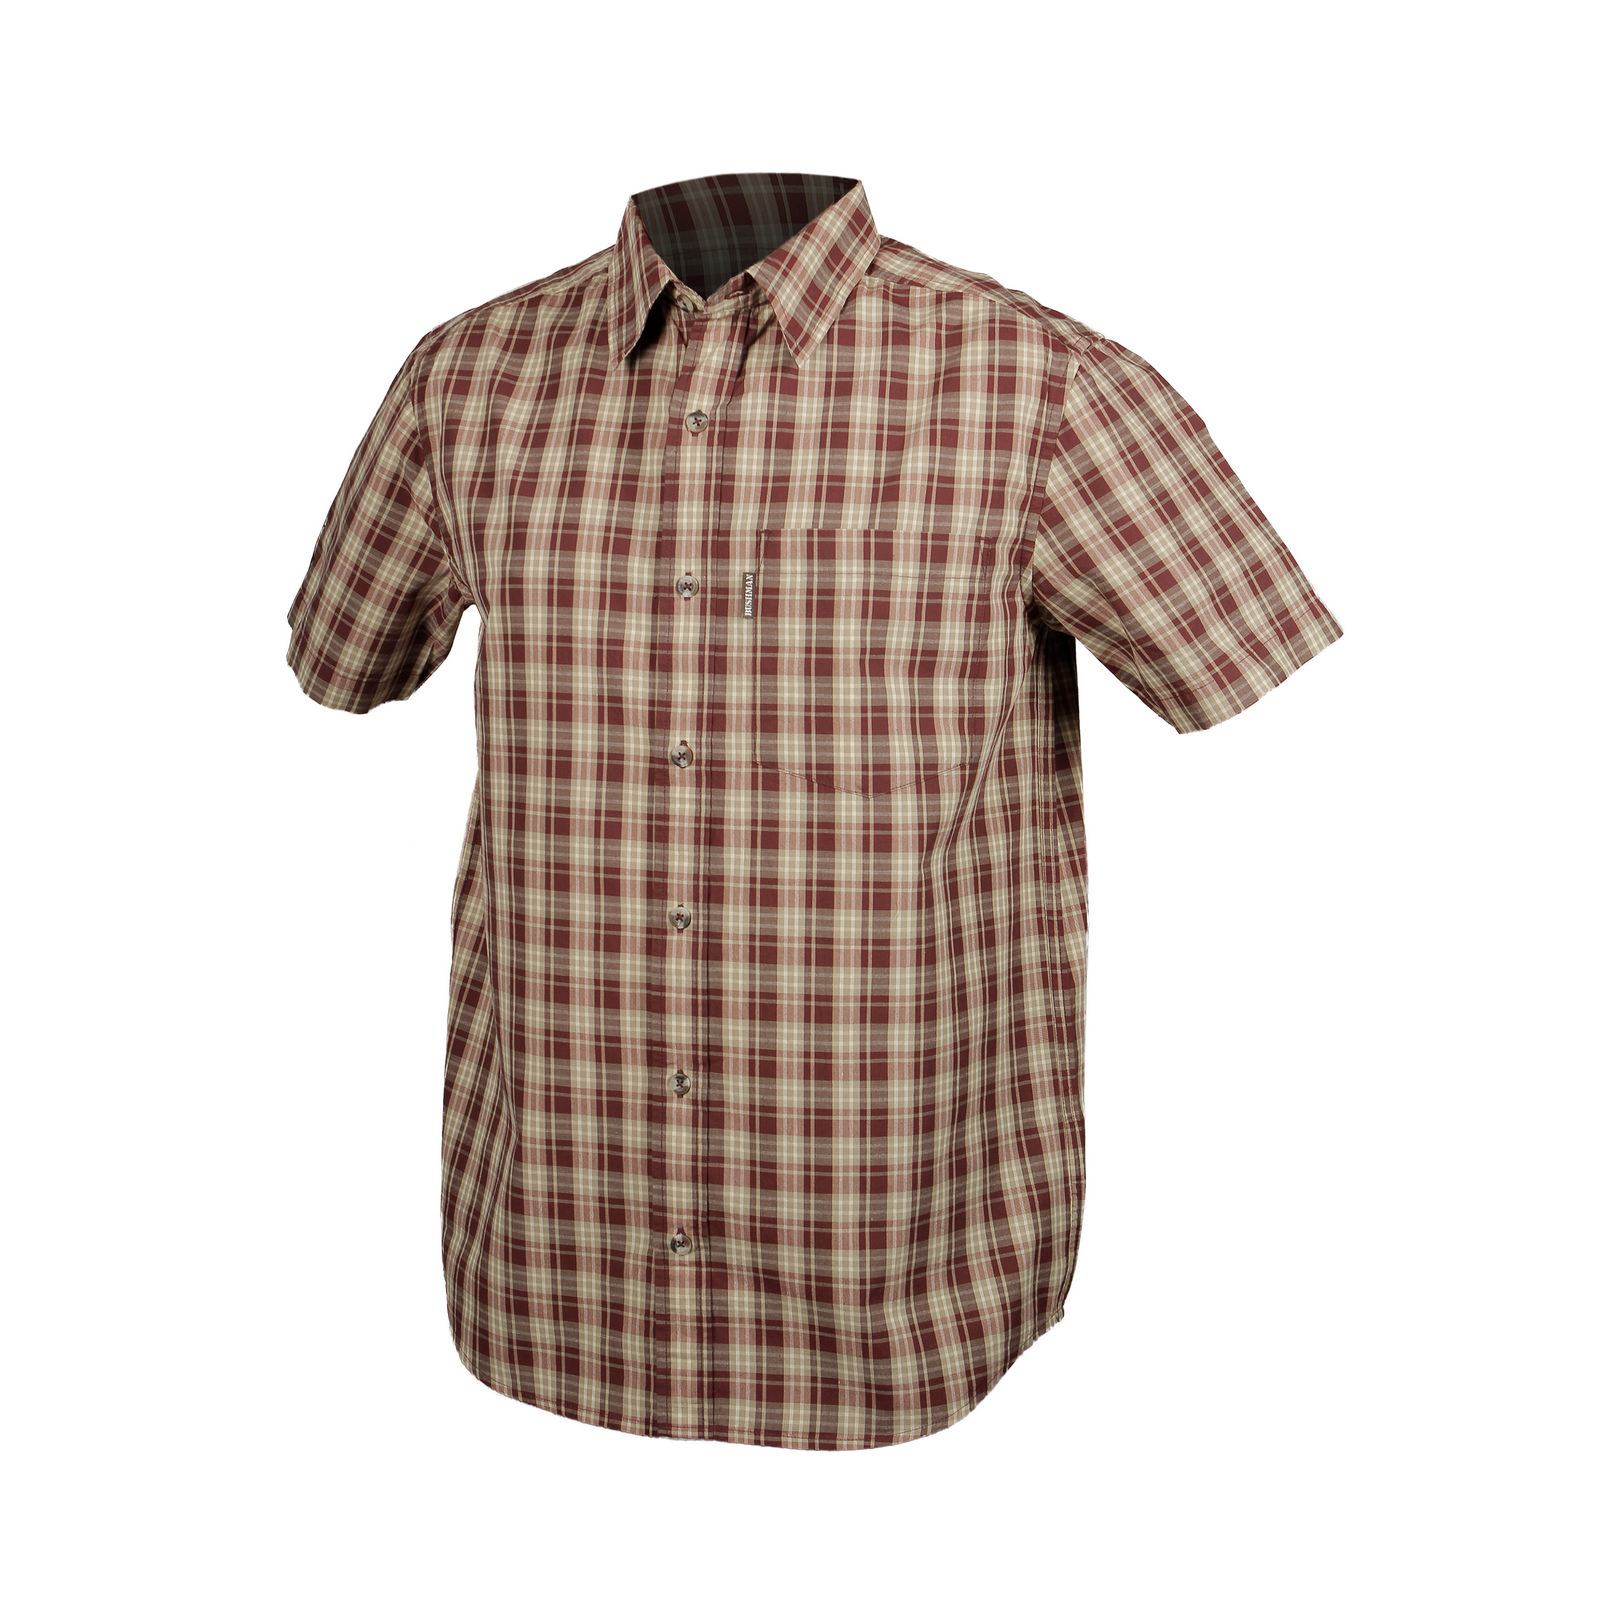 Kozel men's shirt